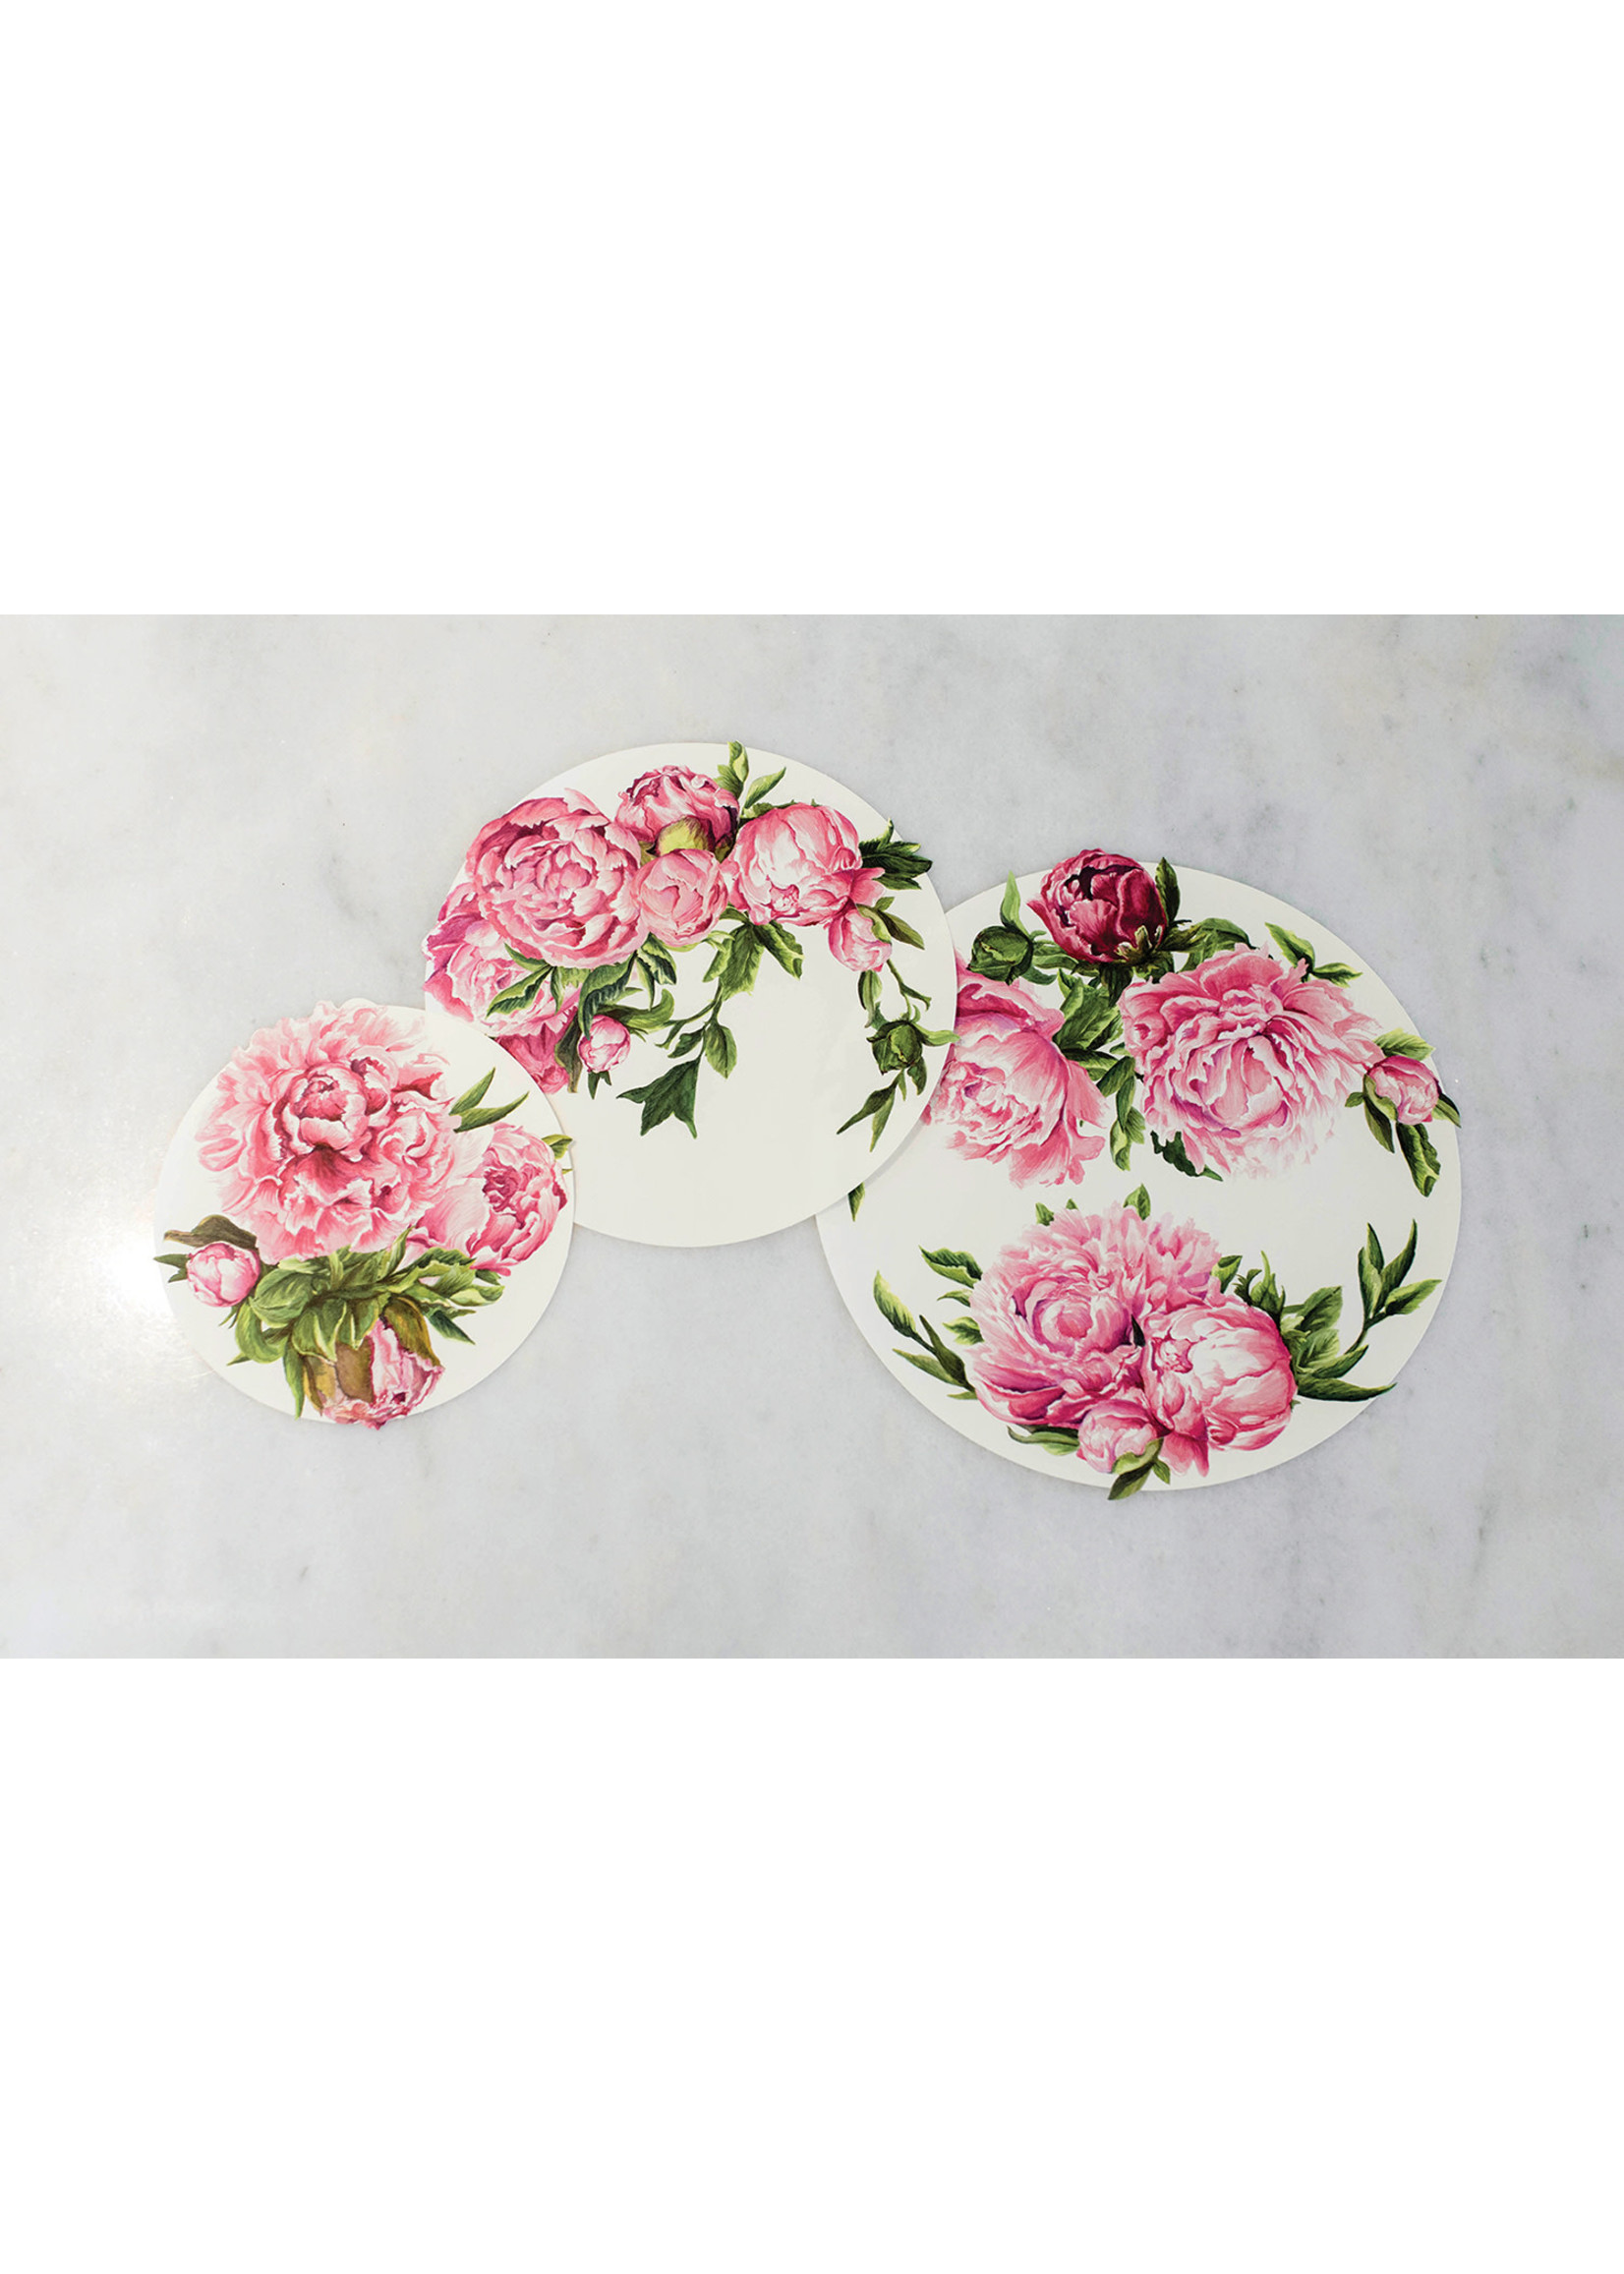 Hester & Cook Paper Serving Papers - Peonies (pack of 18)